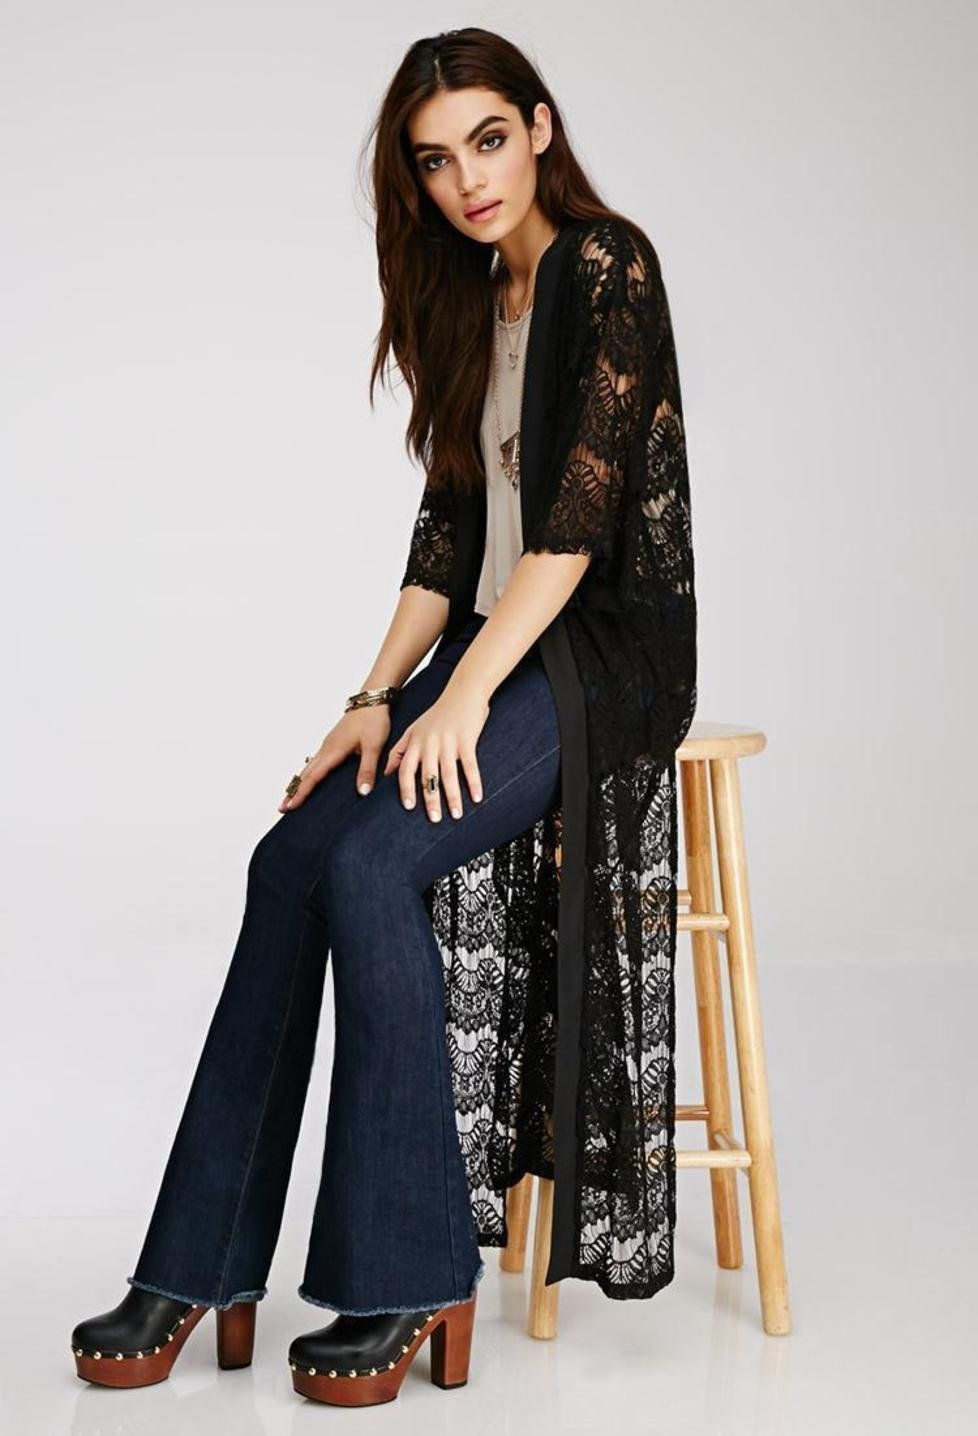 Eyelash Lace Maxi Cardigan http://picvpic.com/women-tops-sweaters ...